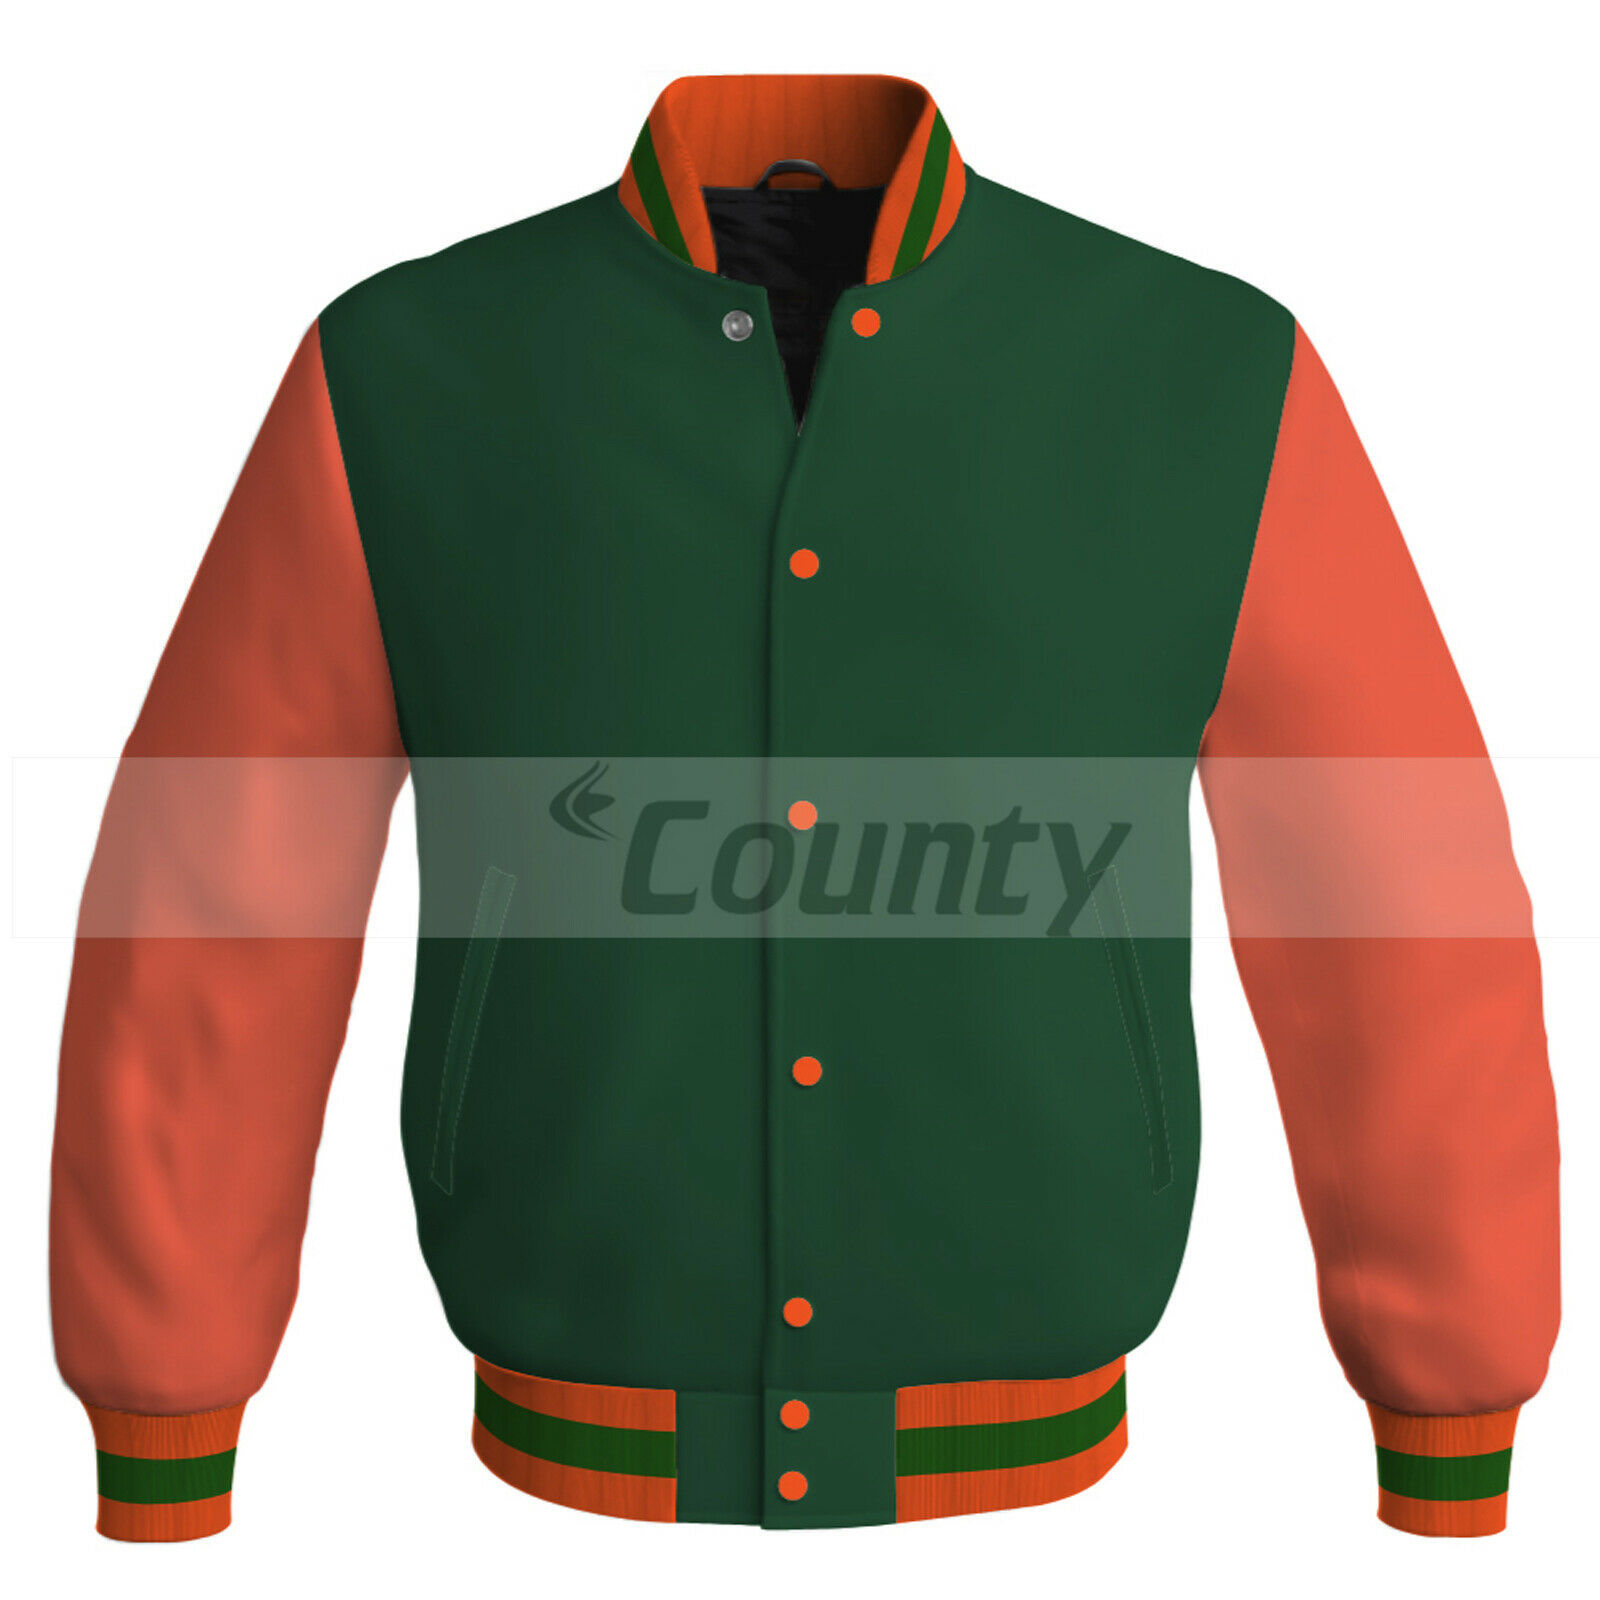 Primary image for Letterman Super Baseball College Bomber Jacket Sports Forest Green Orange Satin